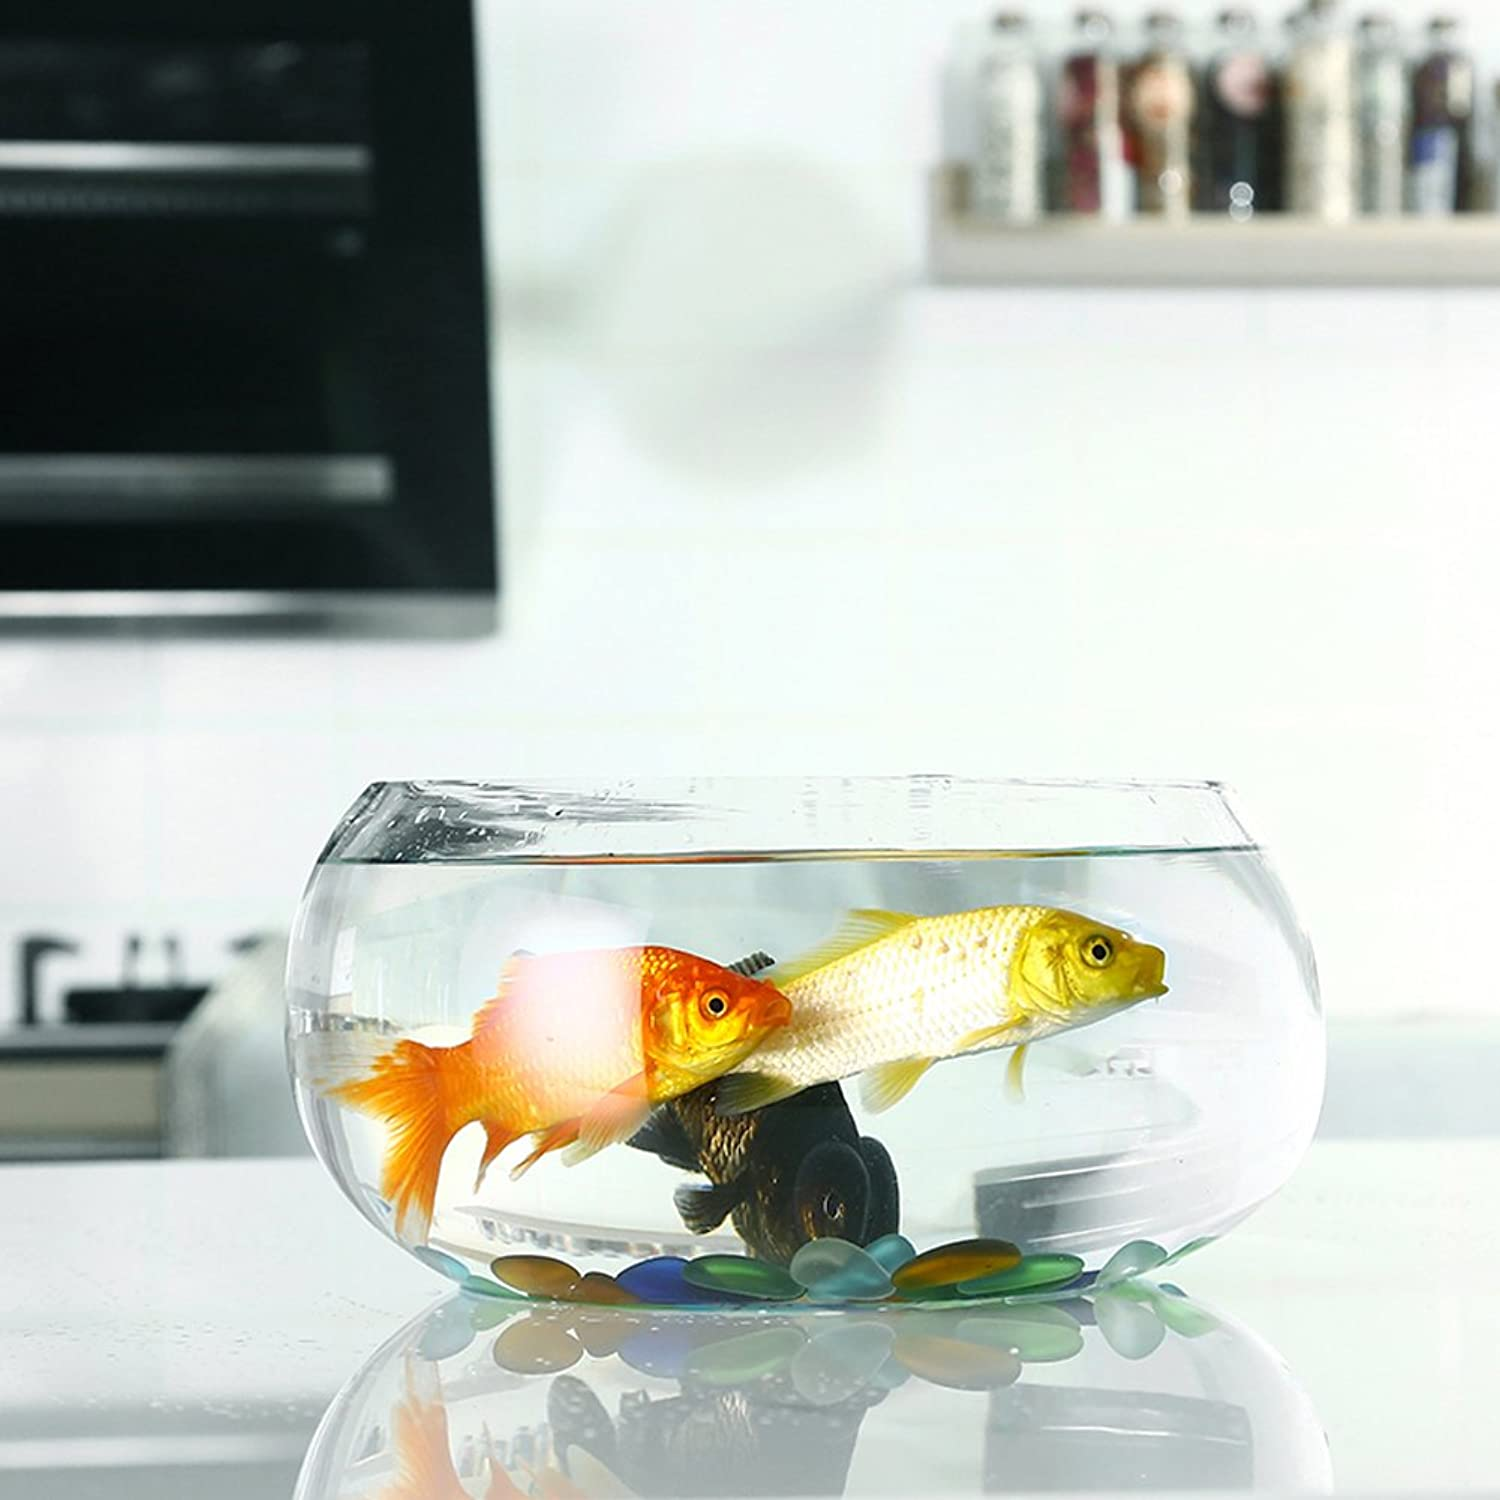 JIANGU creative transparent circular glass fish tank, mini office desktop aquarium, hydroponic container medium vase